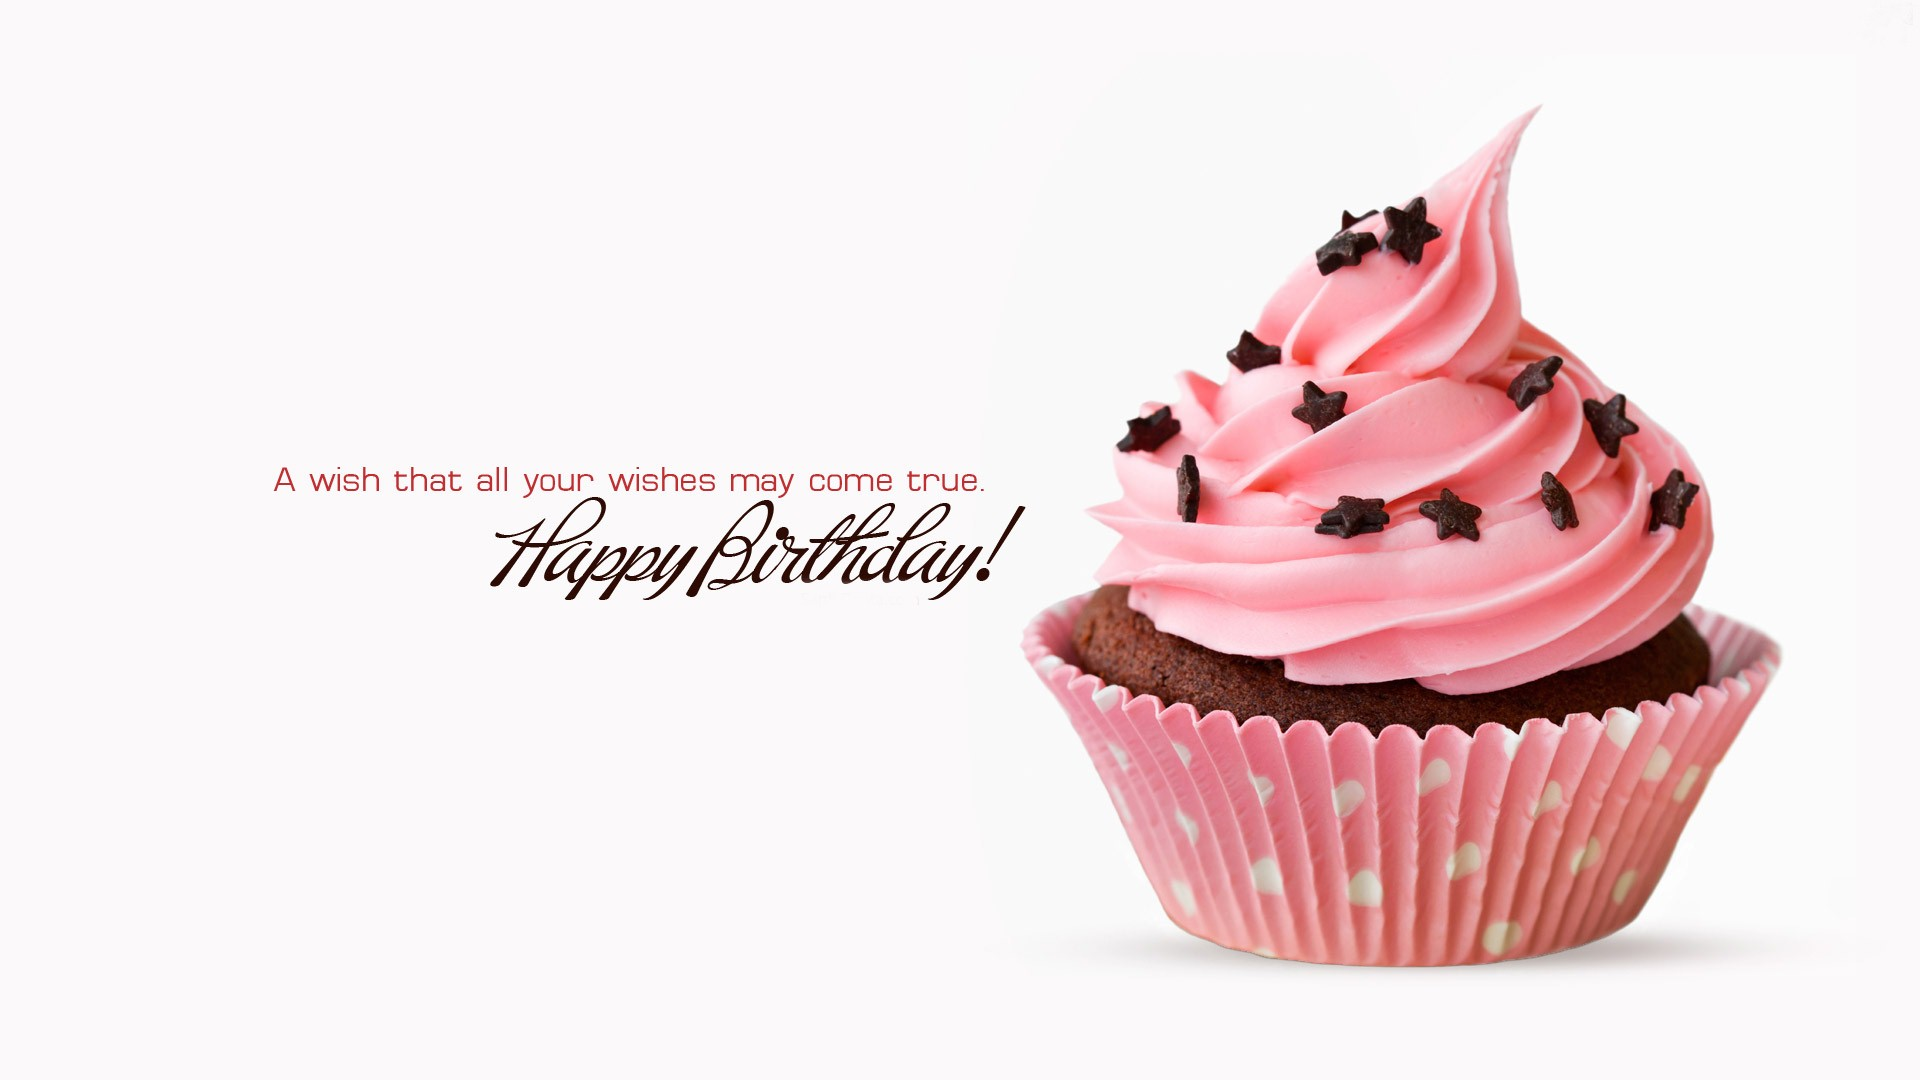 Happy Birthday Cupcake Wishes And Greeting HD Wallpaper